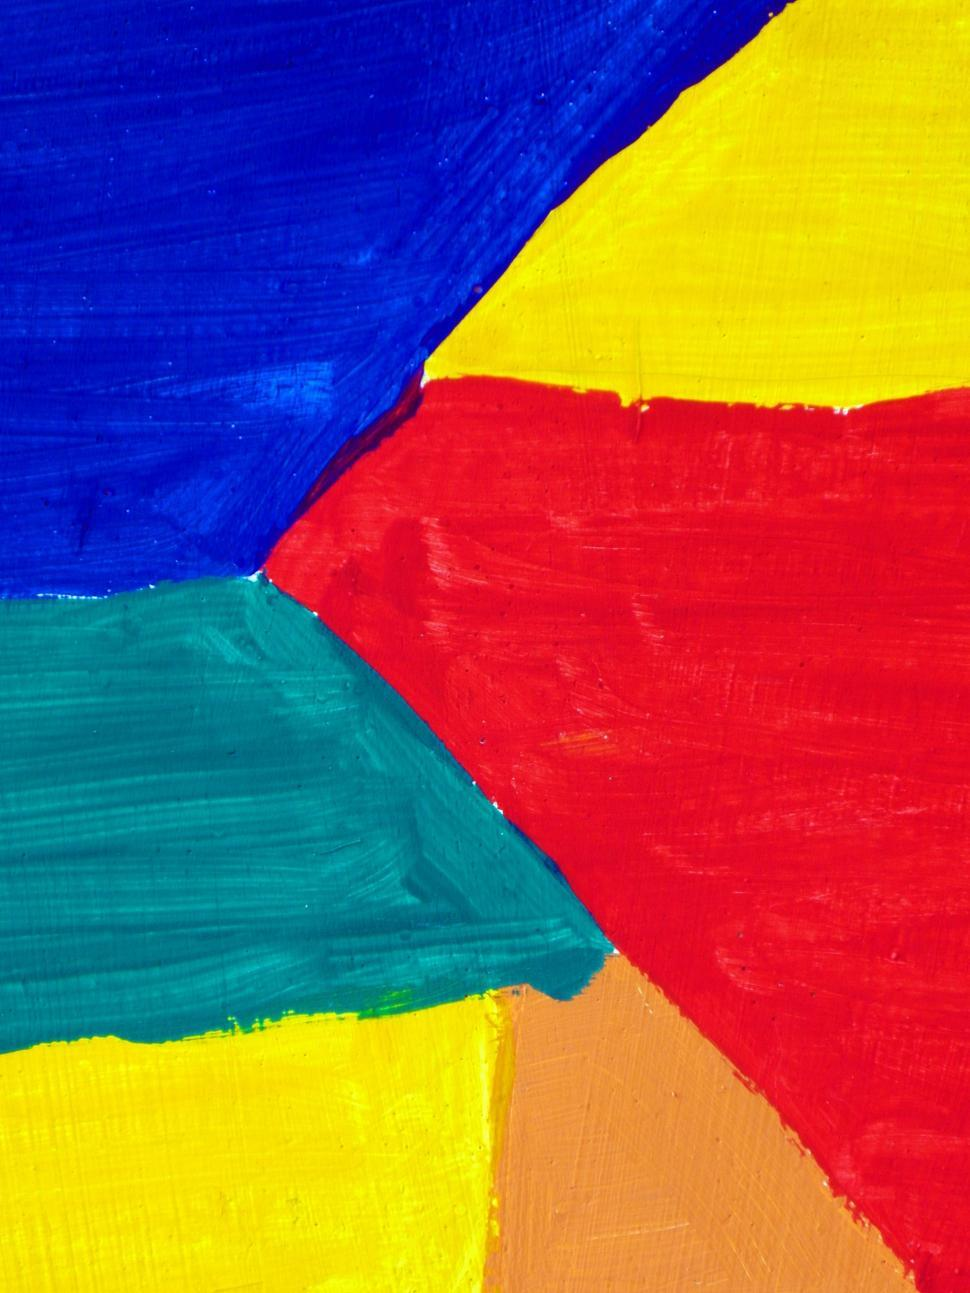 Download Free Stock Photo of Painted Abstract Shapes